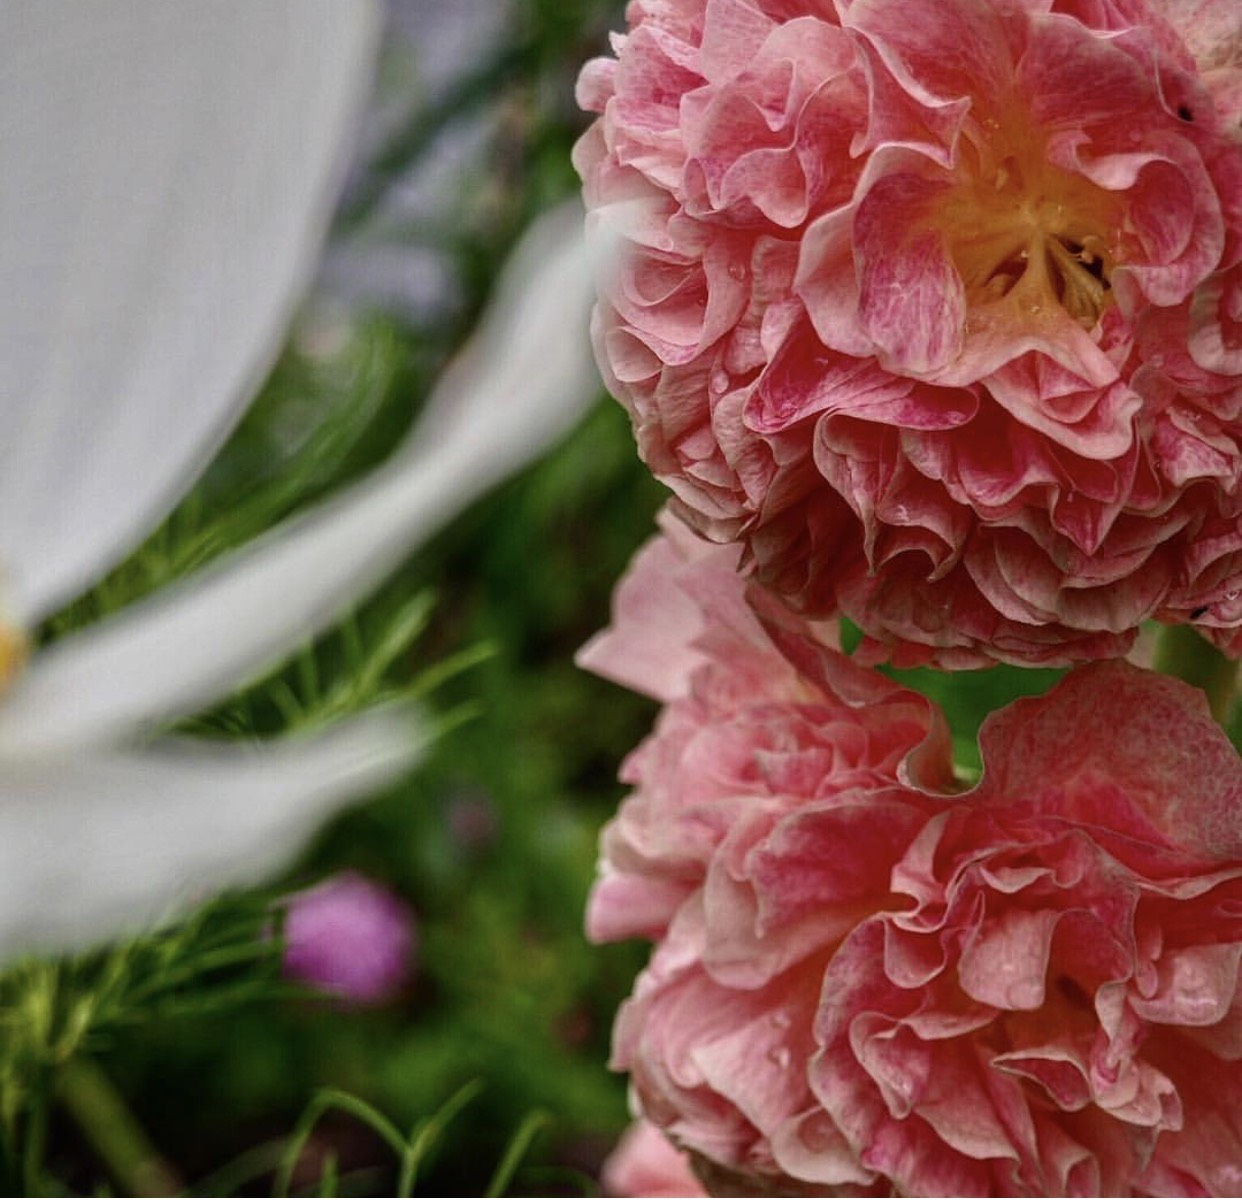 All the ruffles on this beautiful hollyhock